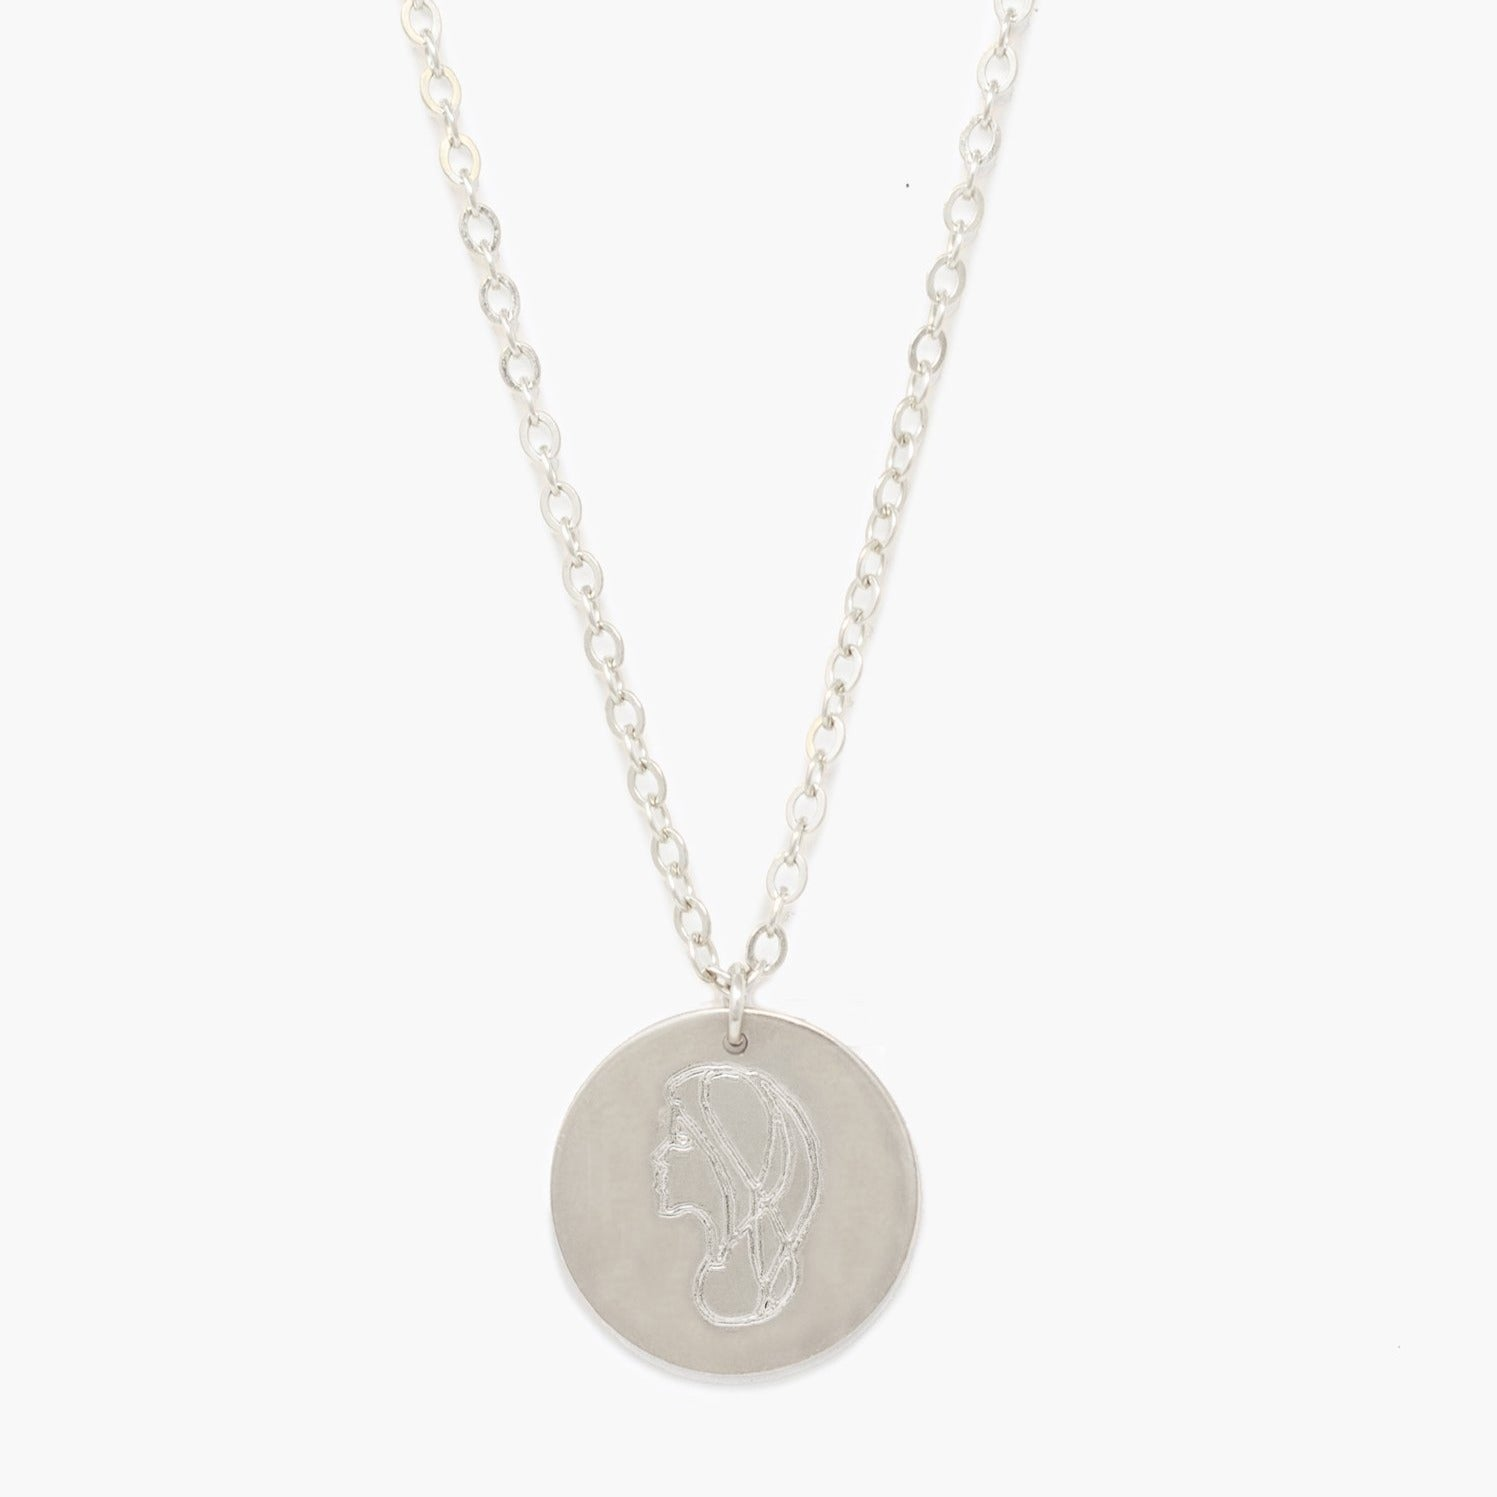 Able - She's Worth more Portrait Heirloom Necklace